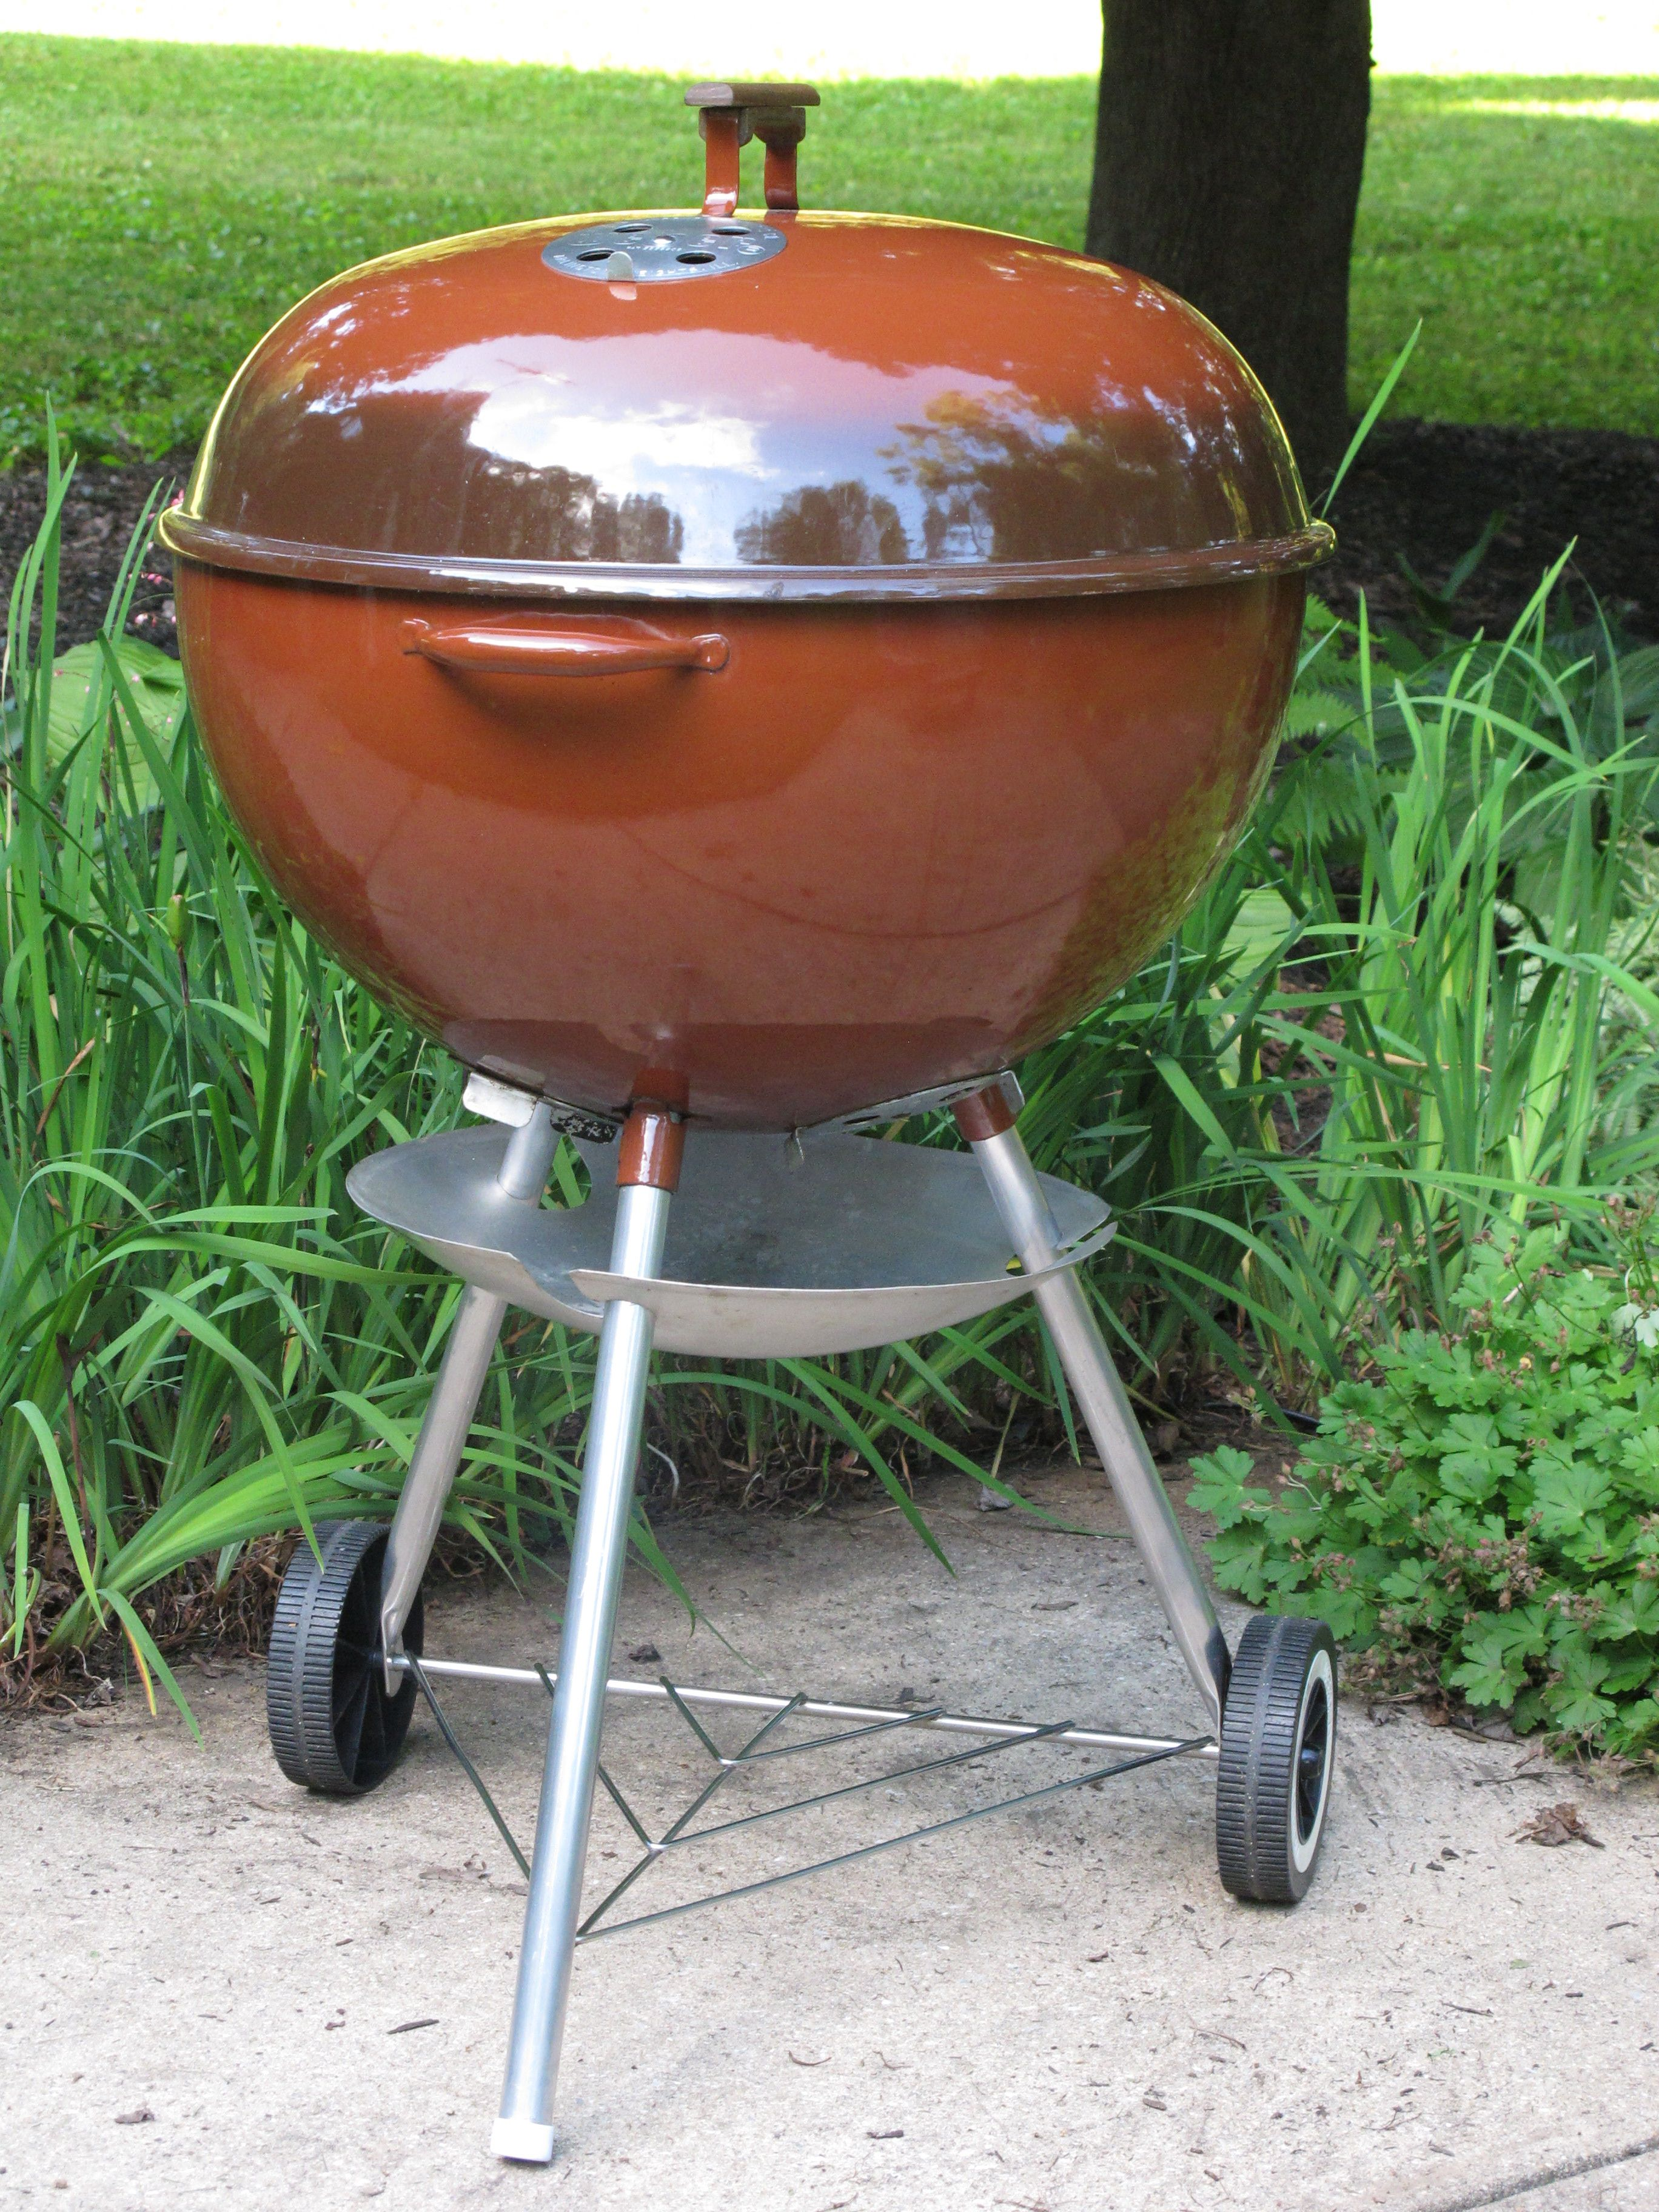 1976 77 22 5 Weber Grill Weber Grill Grilling Charcoal Grill